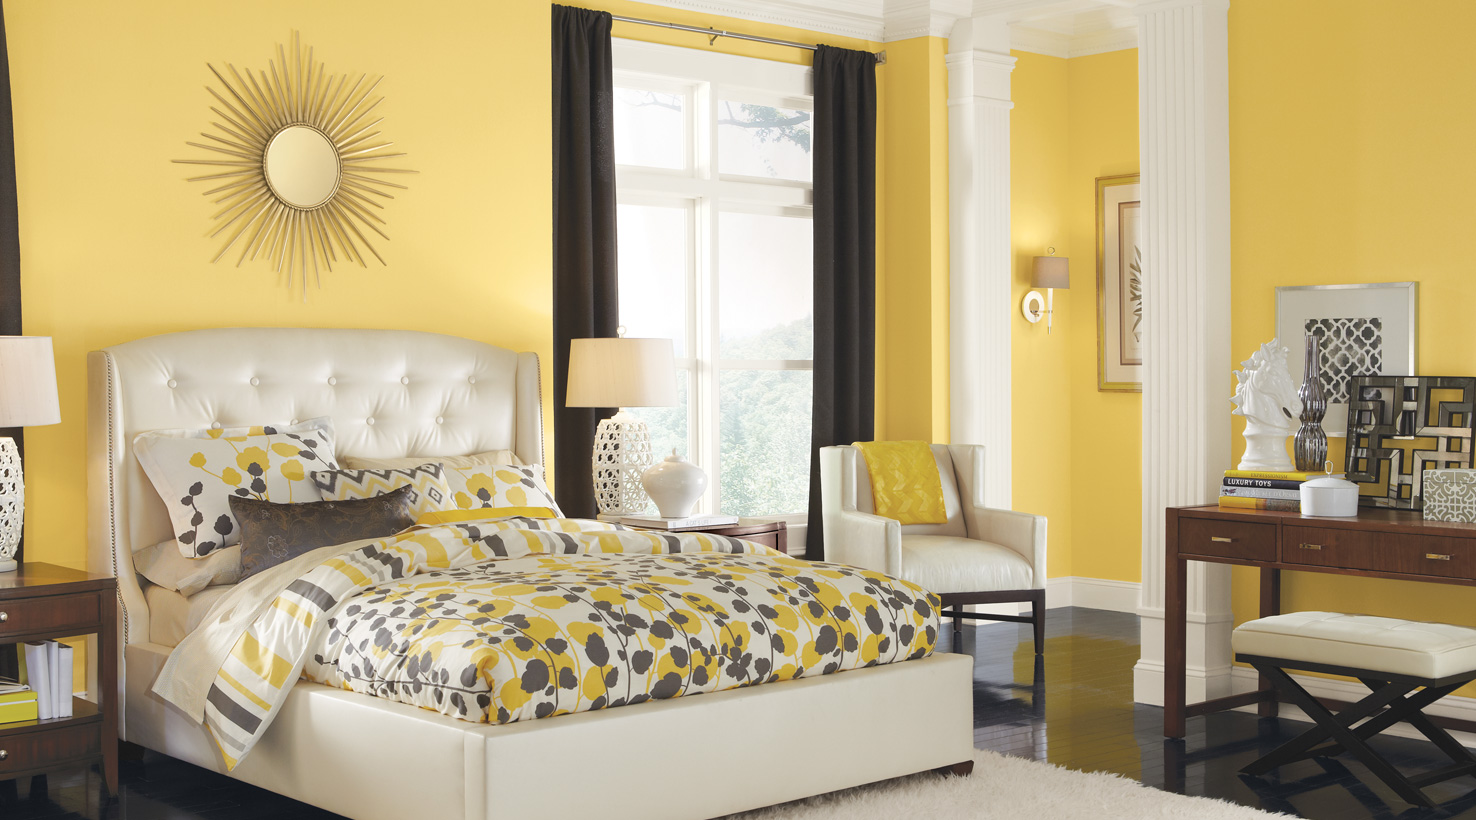 Contemporary paint colors for bedrooms 1 ... hlgqxzp